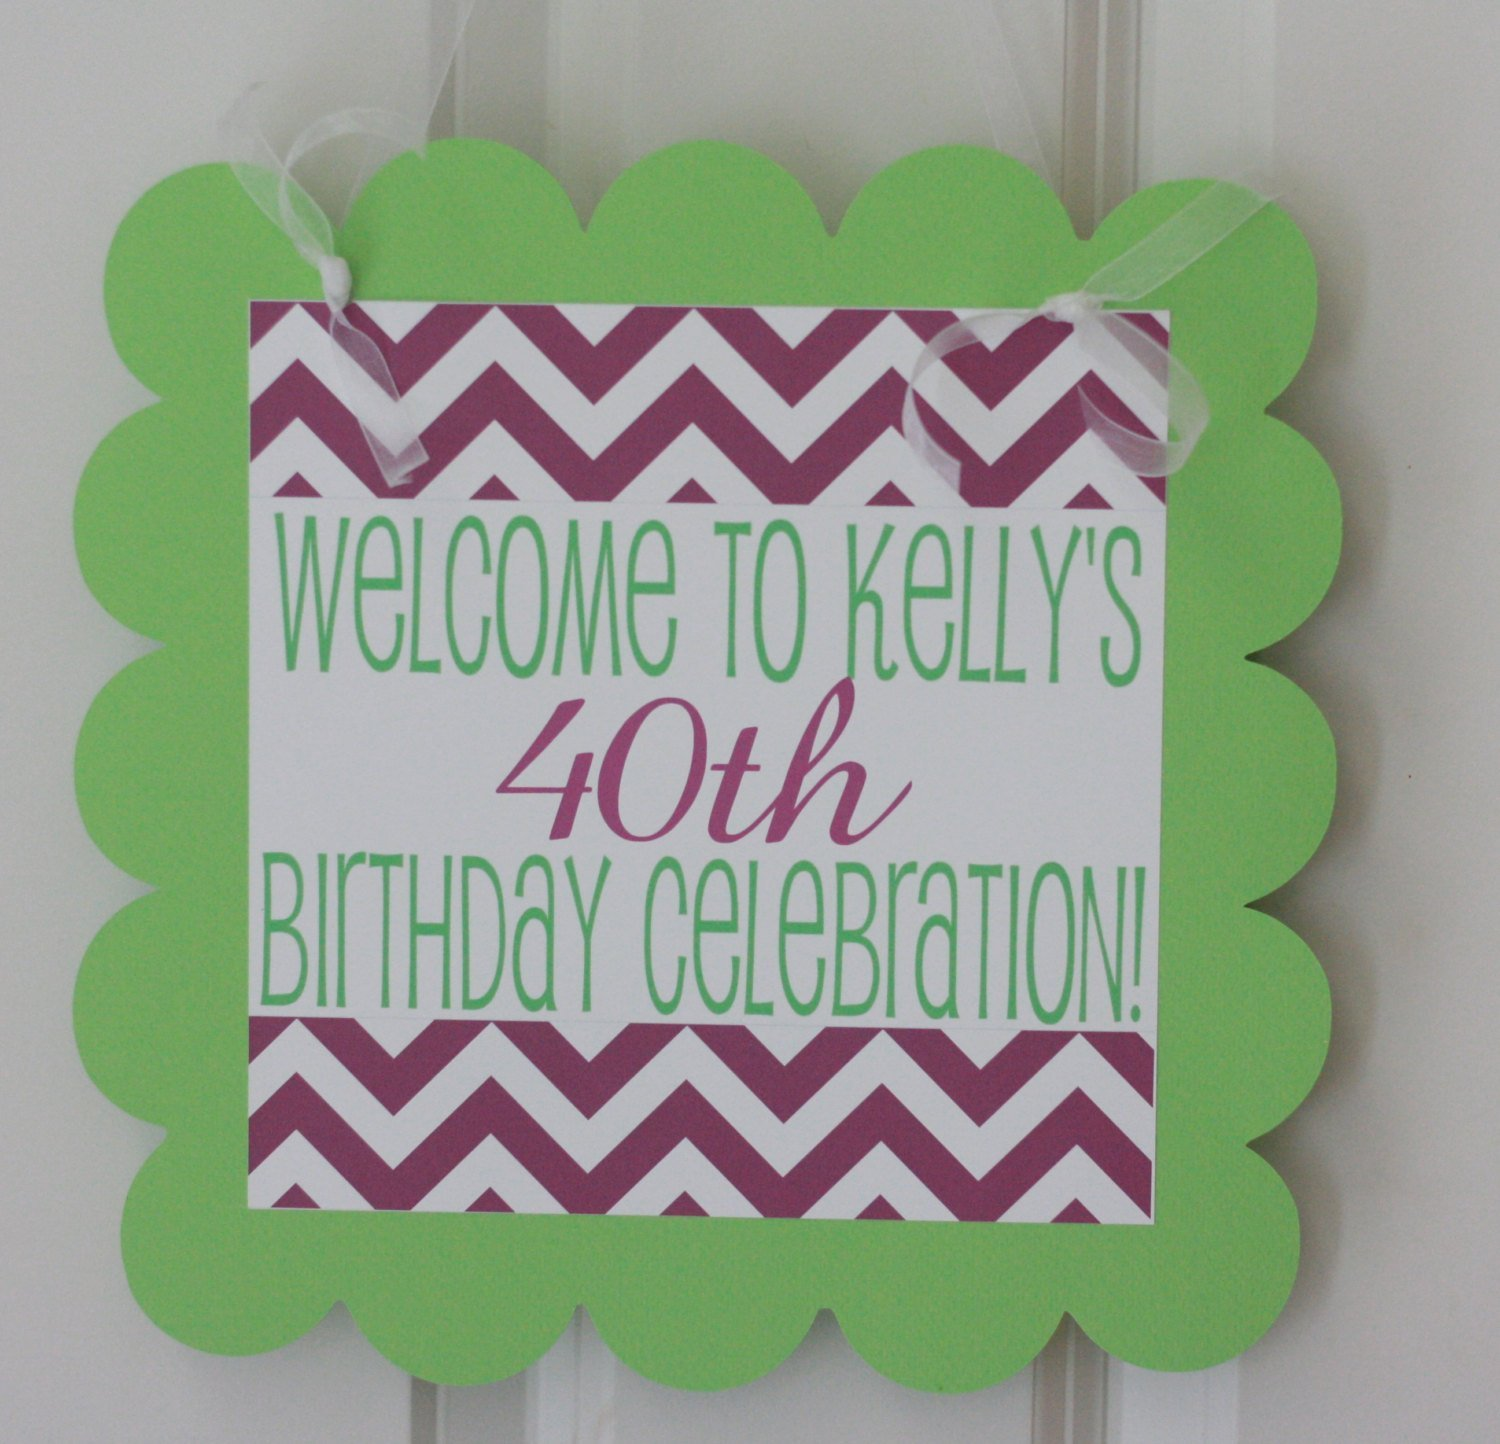 Banners Party Packages 12 40 Door Signs Available Tags 30 Purple /& Lime Green Martini Cocktail Over the Hill Chevron 21 50 60 Birthday Cupcake Toppers